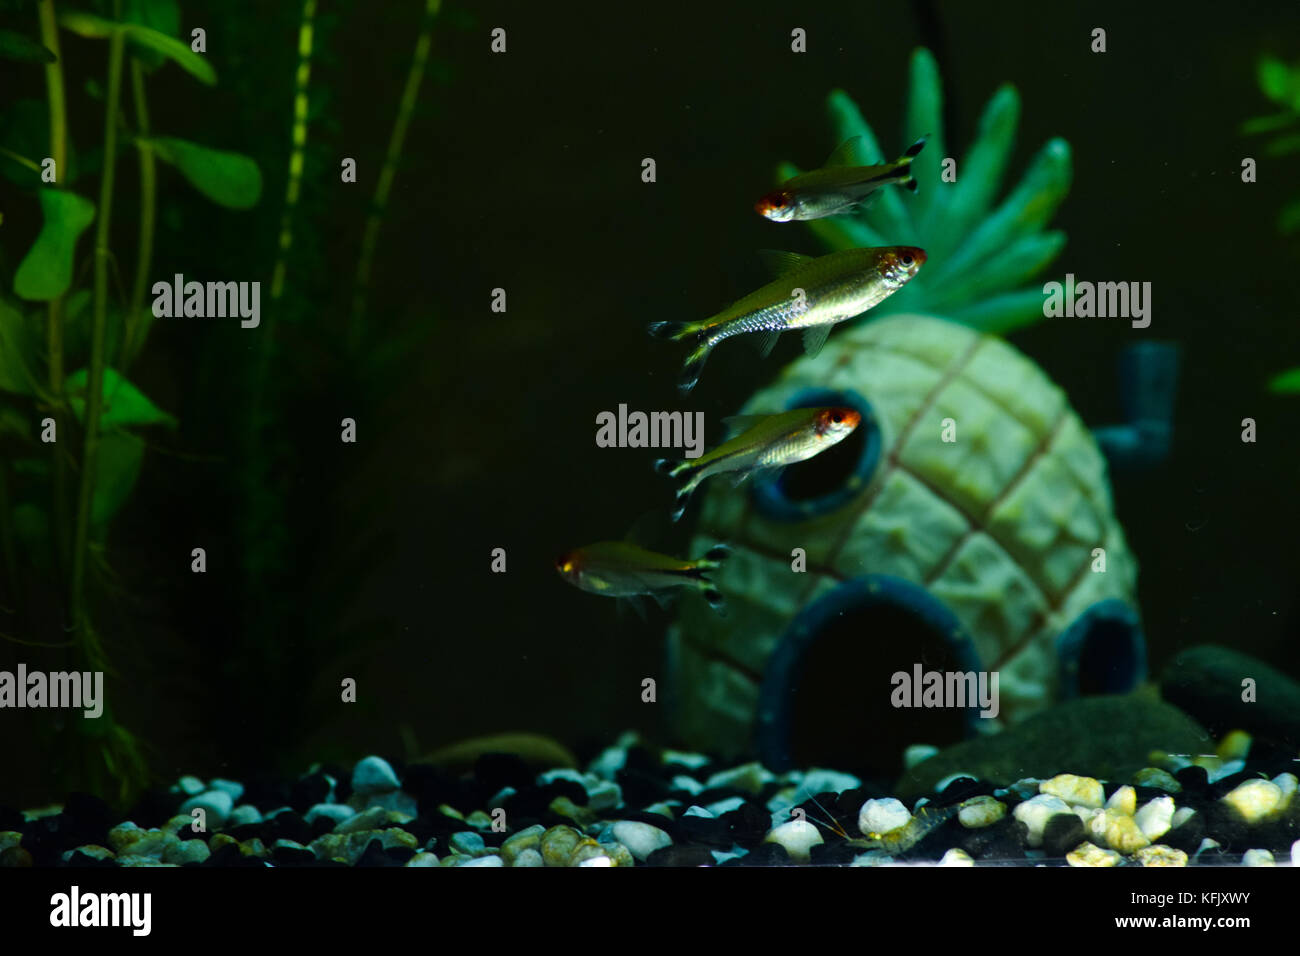 A school of  Rummy-nose Tetra and one Ghost Shrimp in their 55 gal. tropical aquarium home. - Stock Image